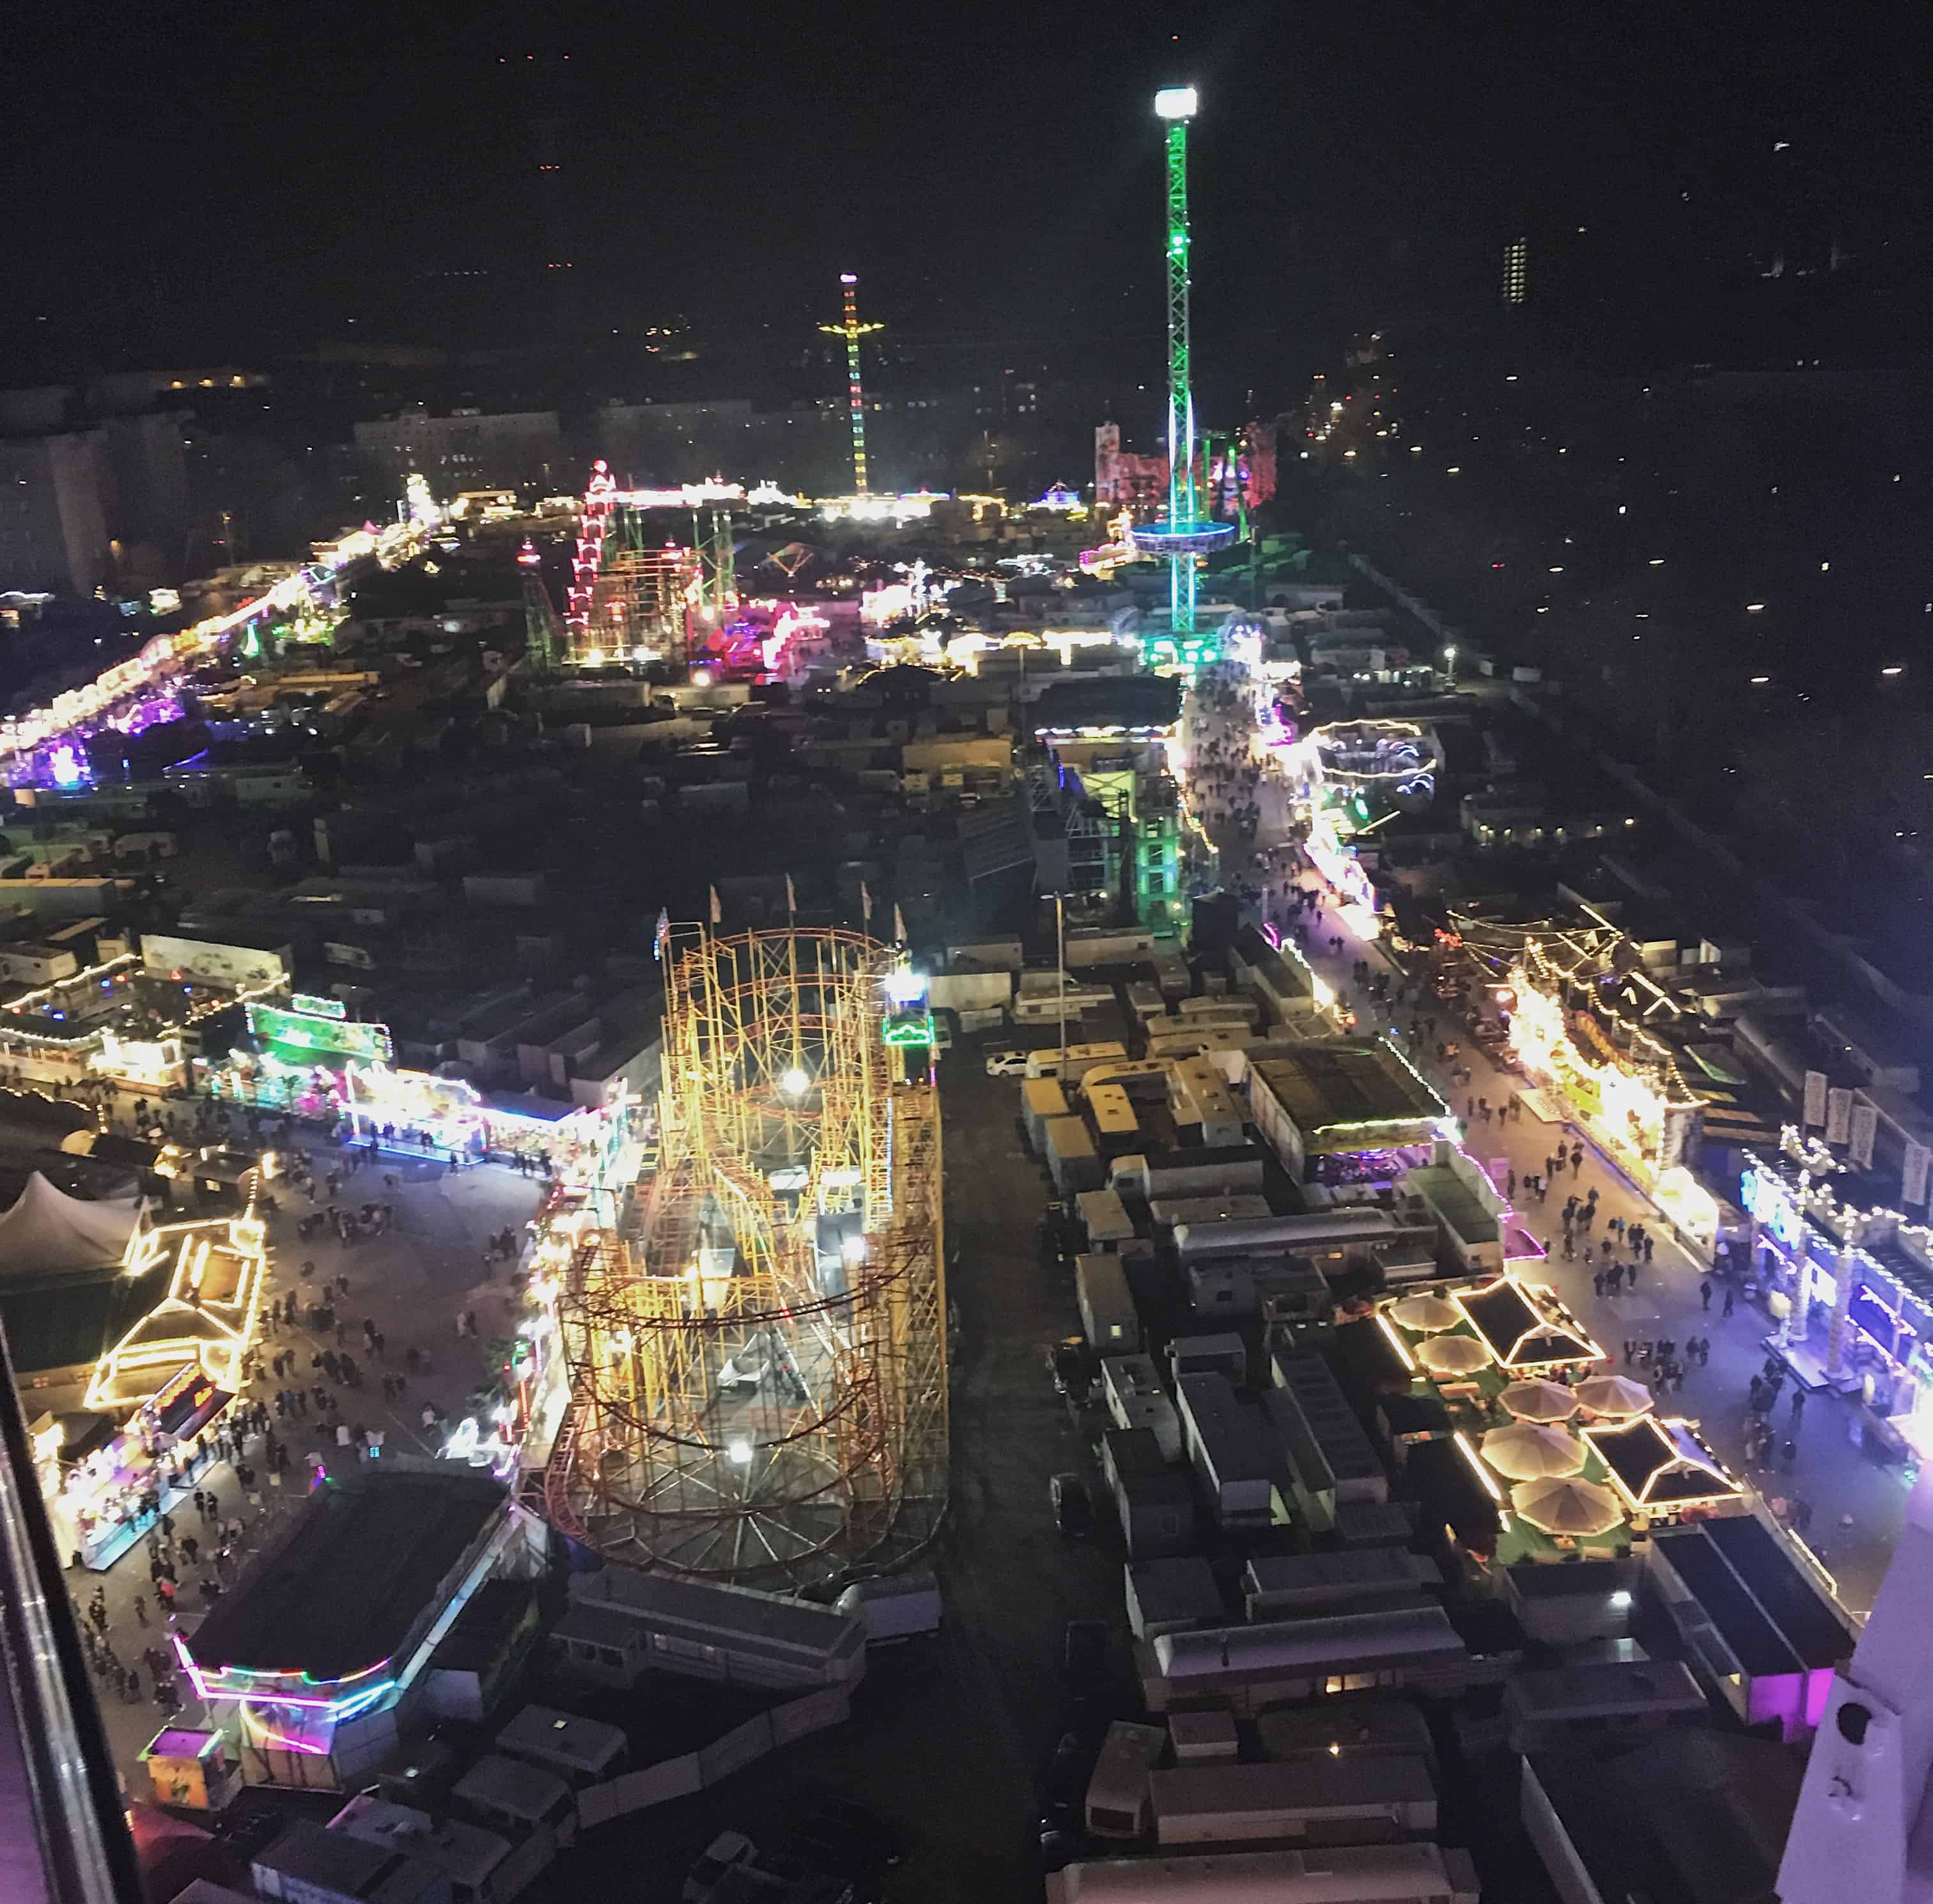 View of the brightly lit Hamburger DOM Carnival from the ferris wheel at night in Hamburg, Germany